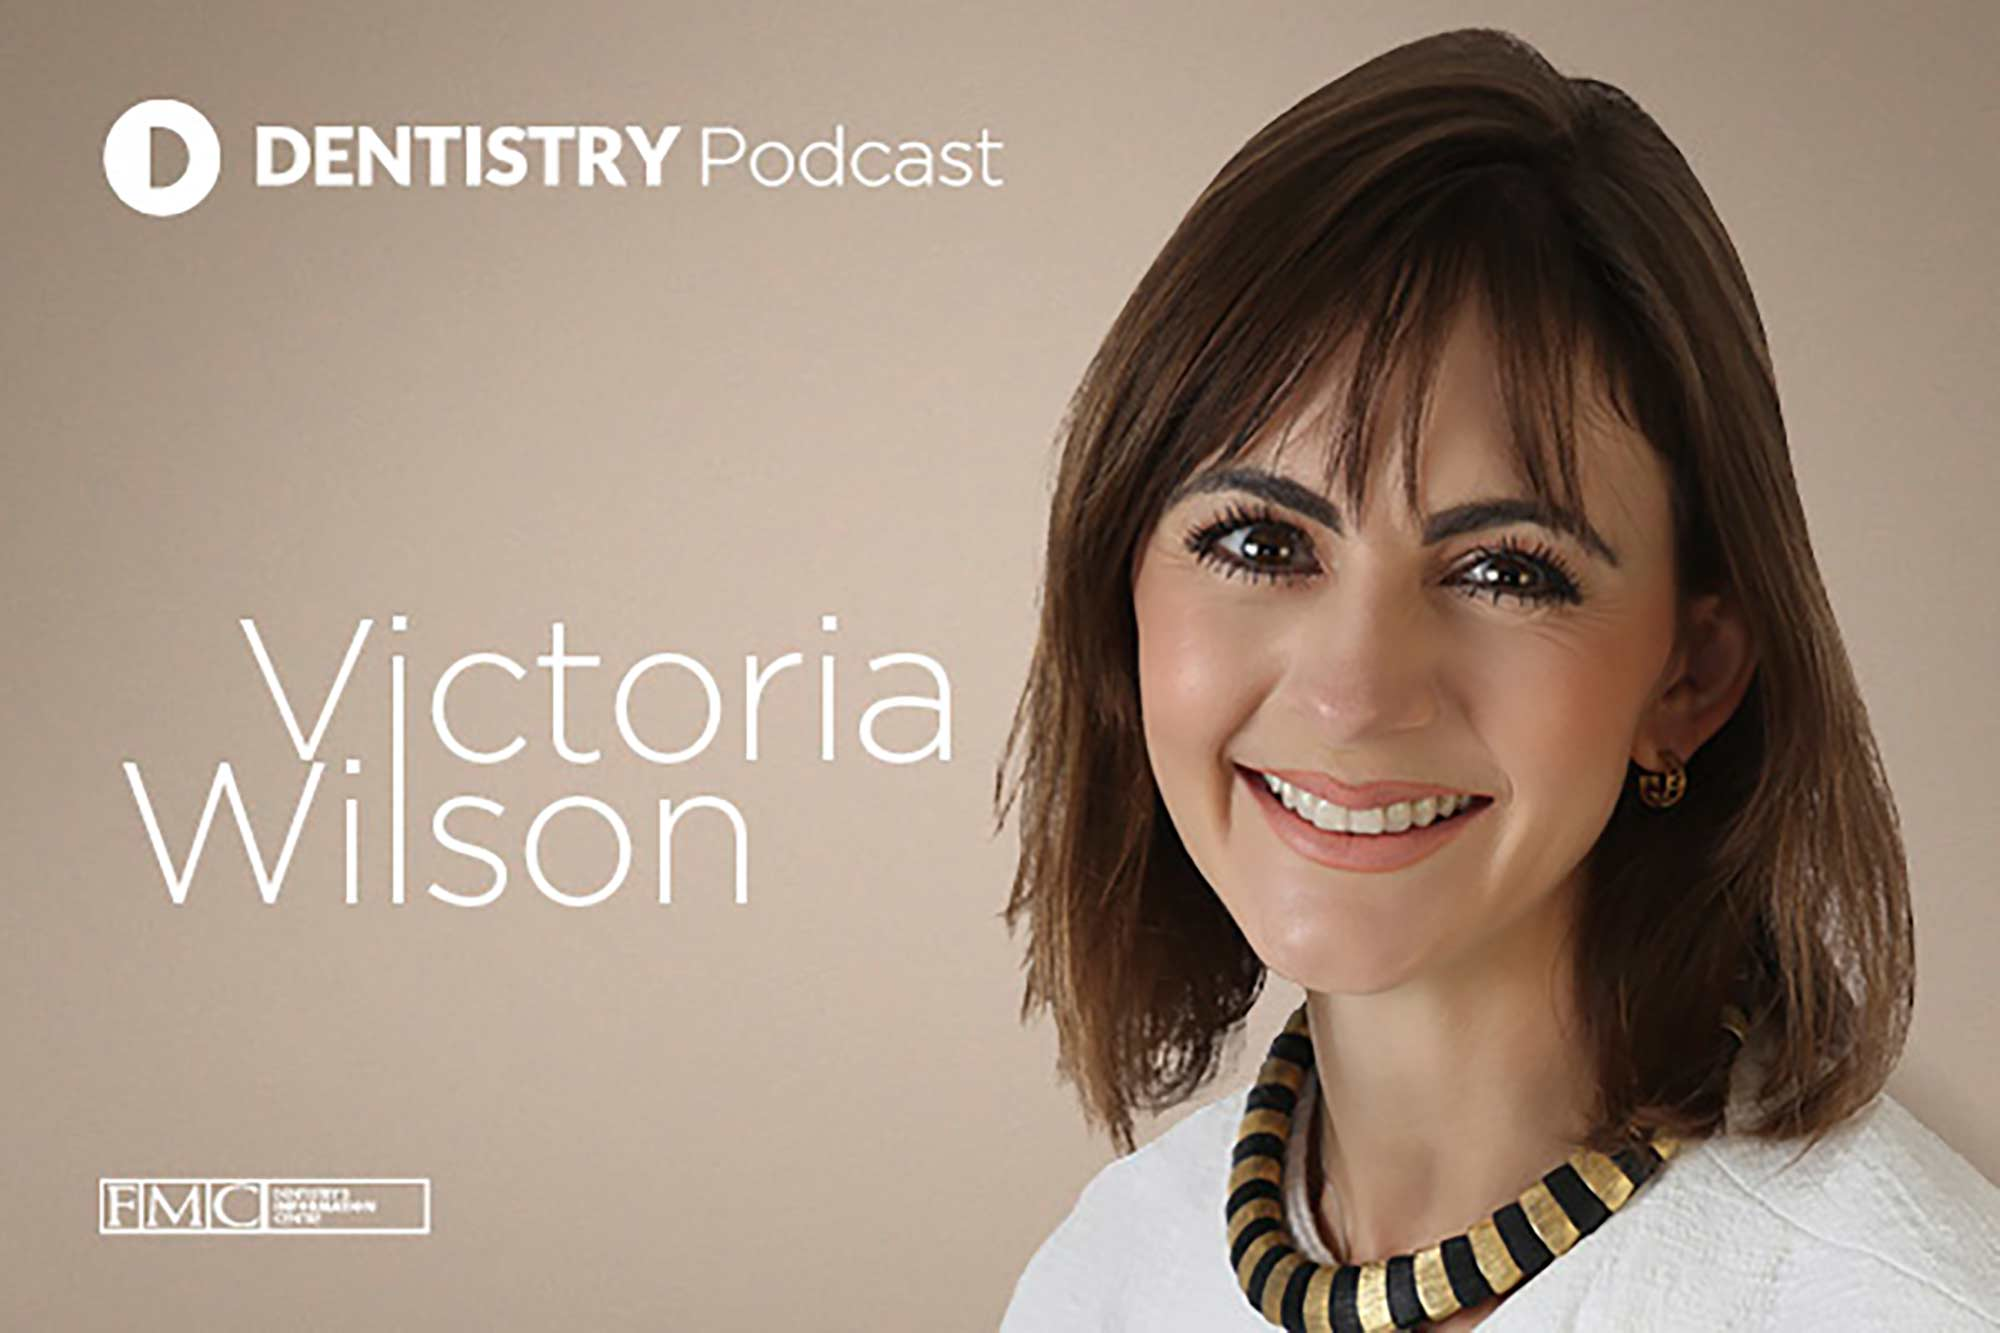 In our latest podcast, Dentistry Online talks to Victoria Wilson about her oral health project and the positives dental professionals can take away from the pandemic